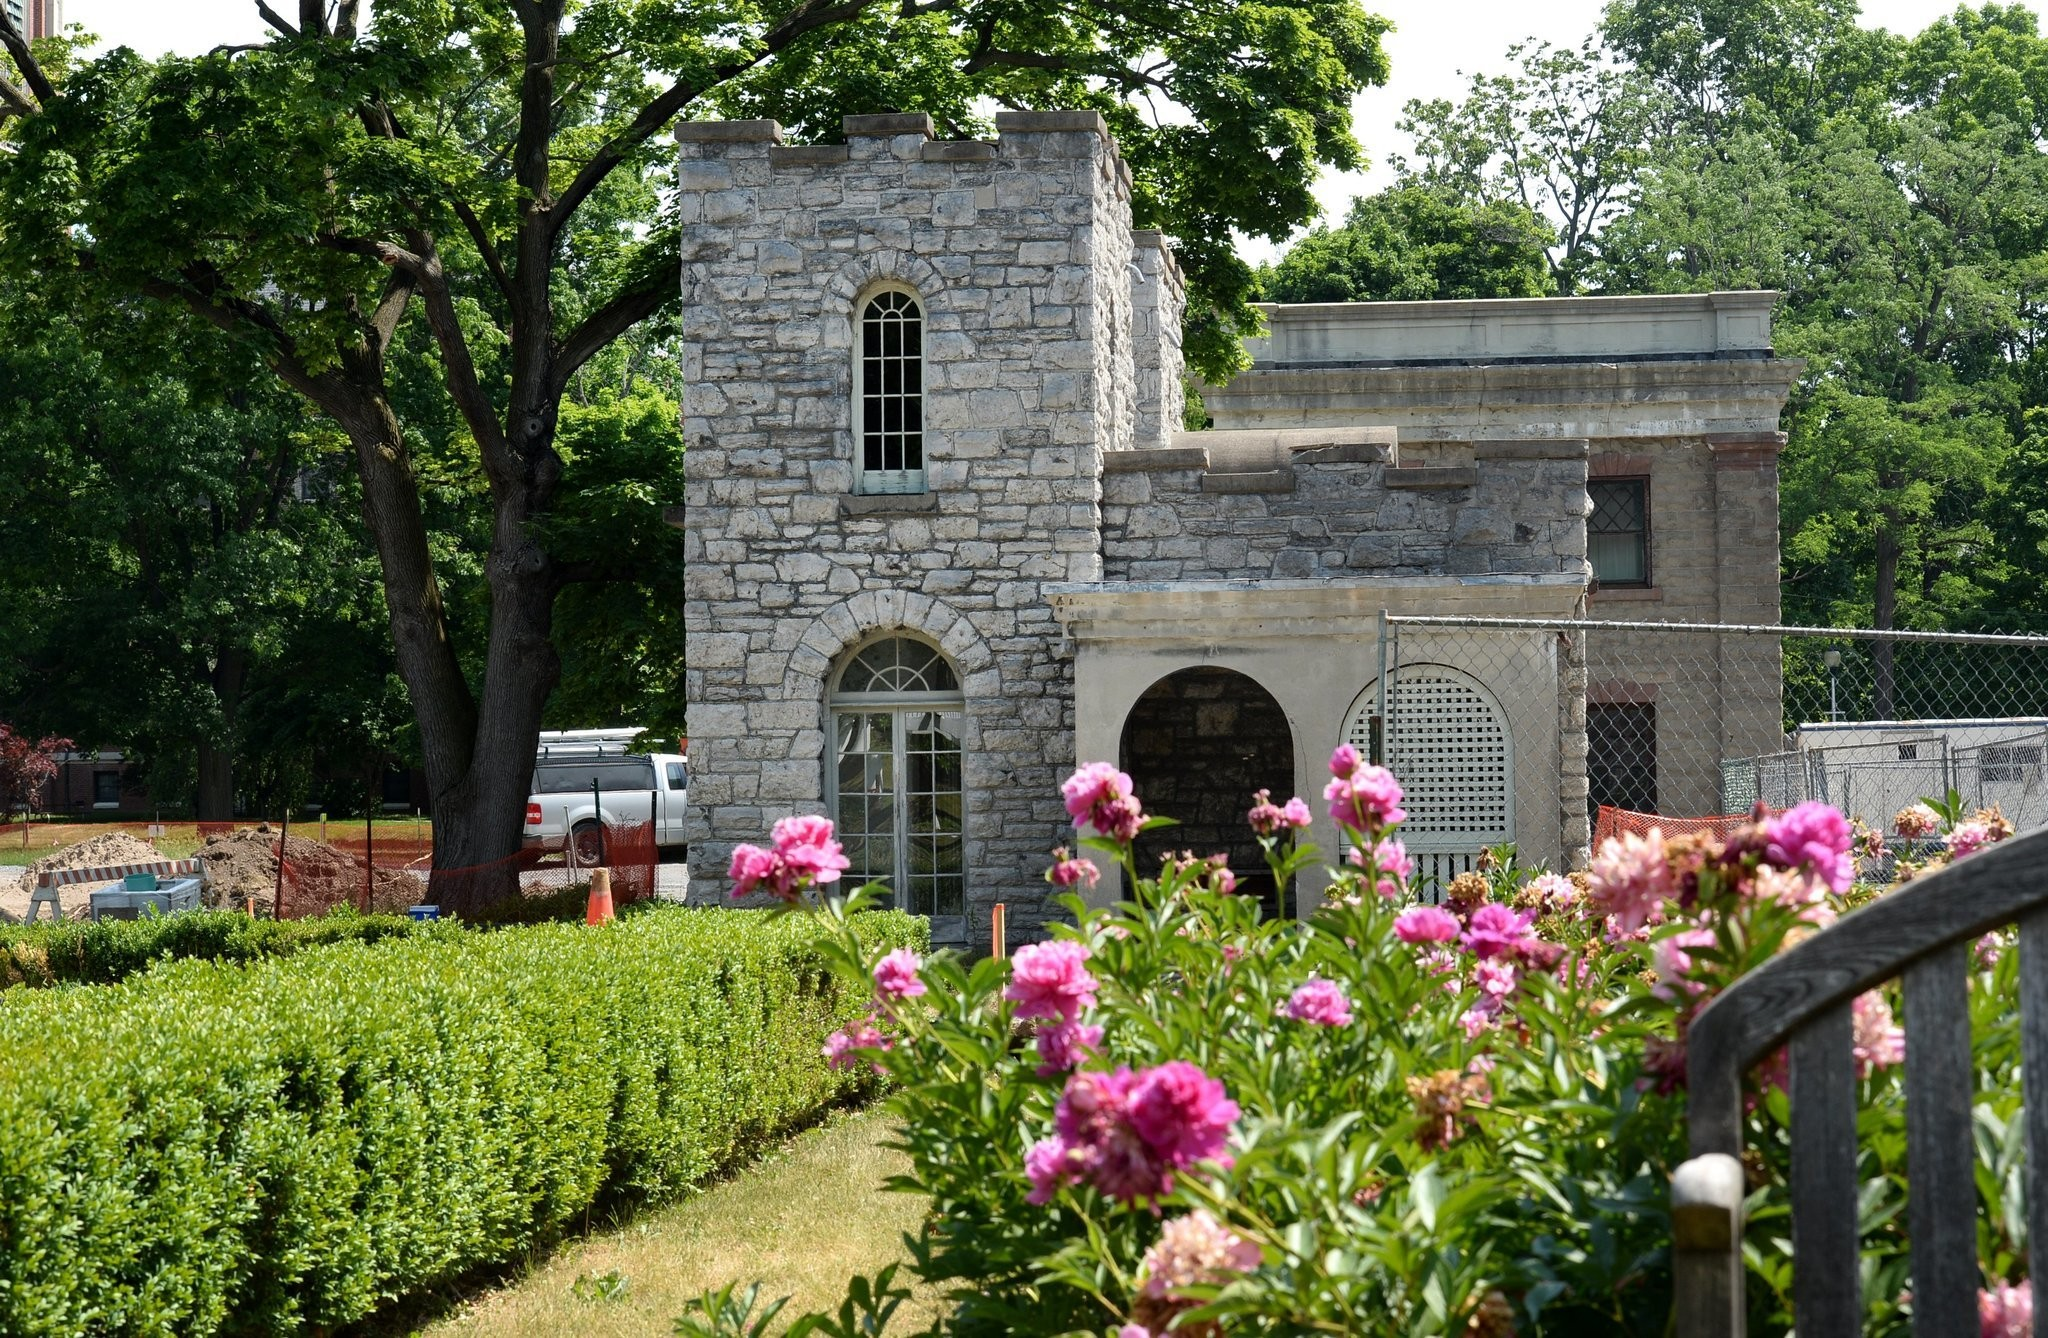 13 Upstate New York Gardens Open To The Public You Have To Visit Newyorkupstate Com